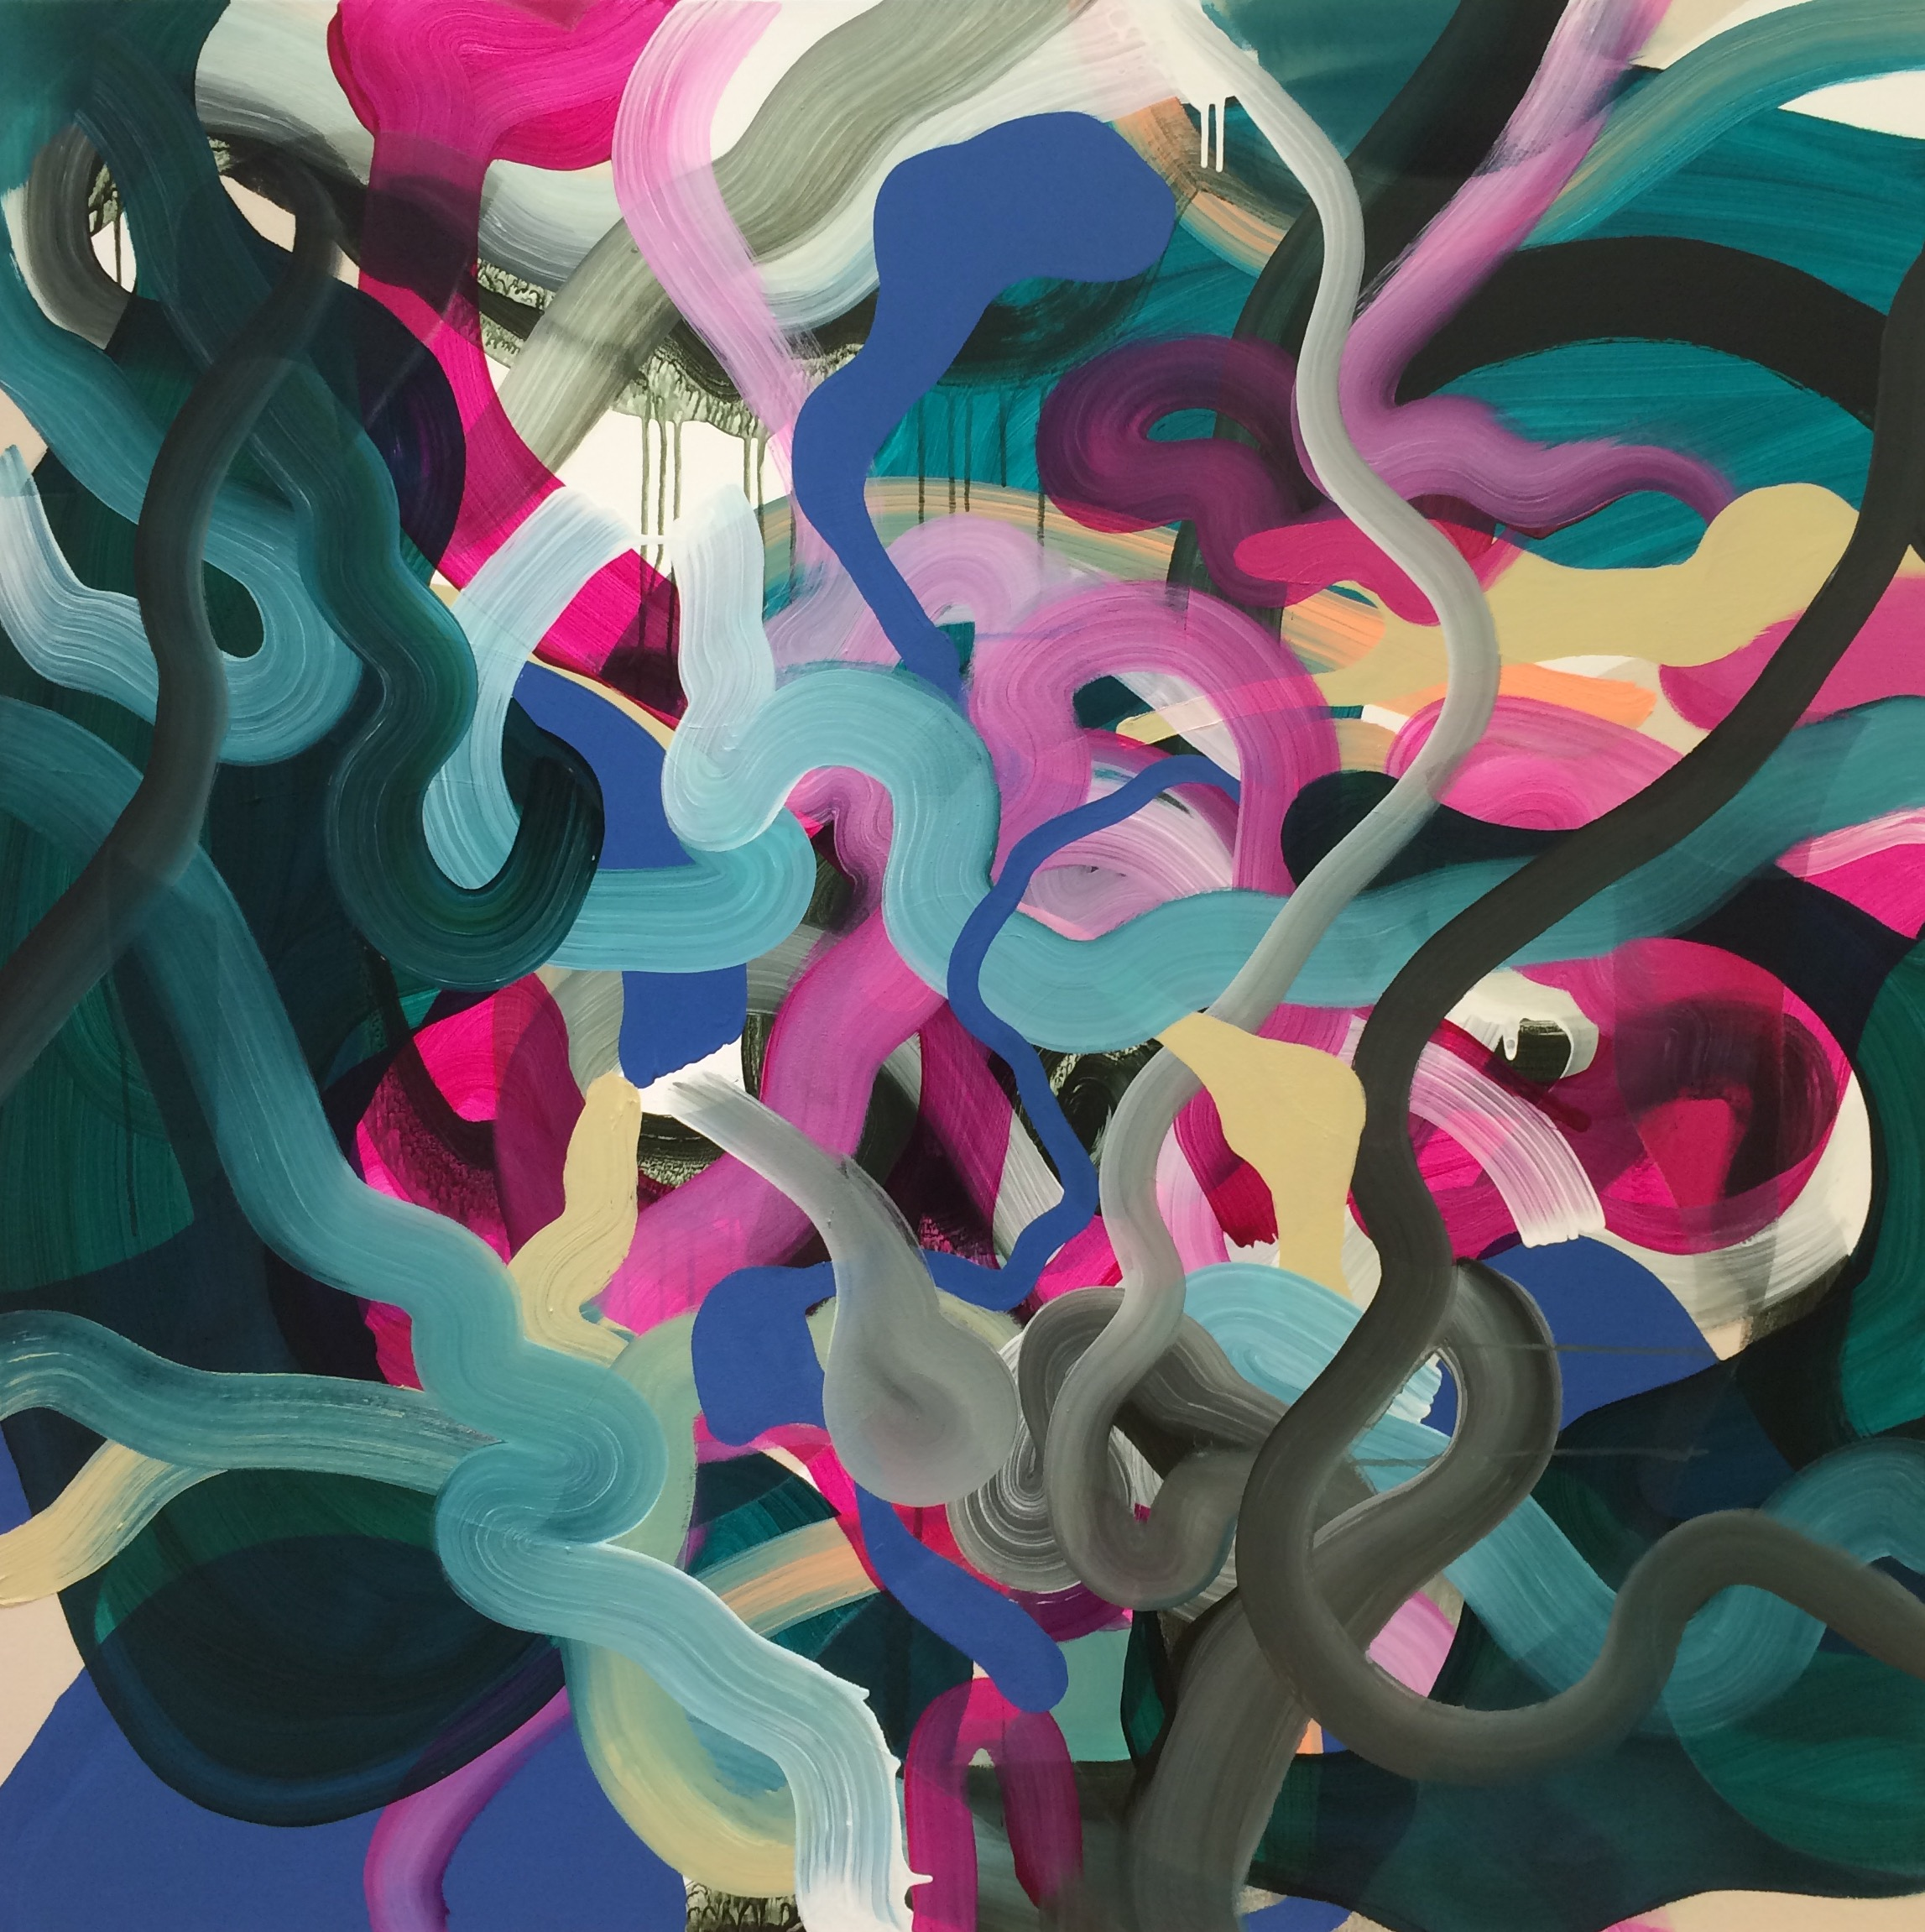 stuff: art collector alert - here's five kiwi artists who are going places     10 JULY 2016  There was a time when abstract expressionist painting was completely out of fashion. So much of it had been done around the world that the style seemed exhausted. Grace Wright is one of a number of young New Zealand artists who are giving gestural painting a new lease of life. Anyone can splash paint around – the challenge is to make art, not a mess....